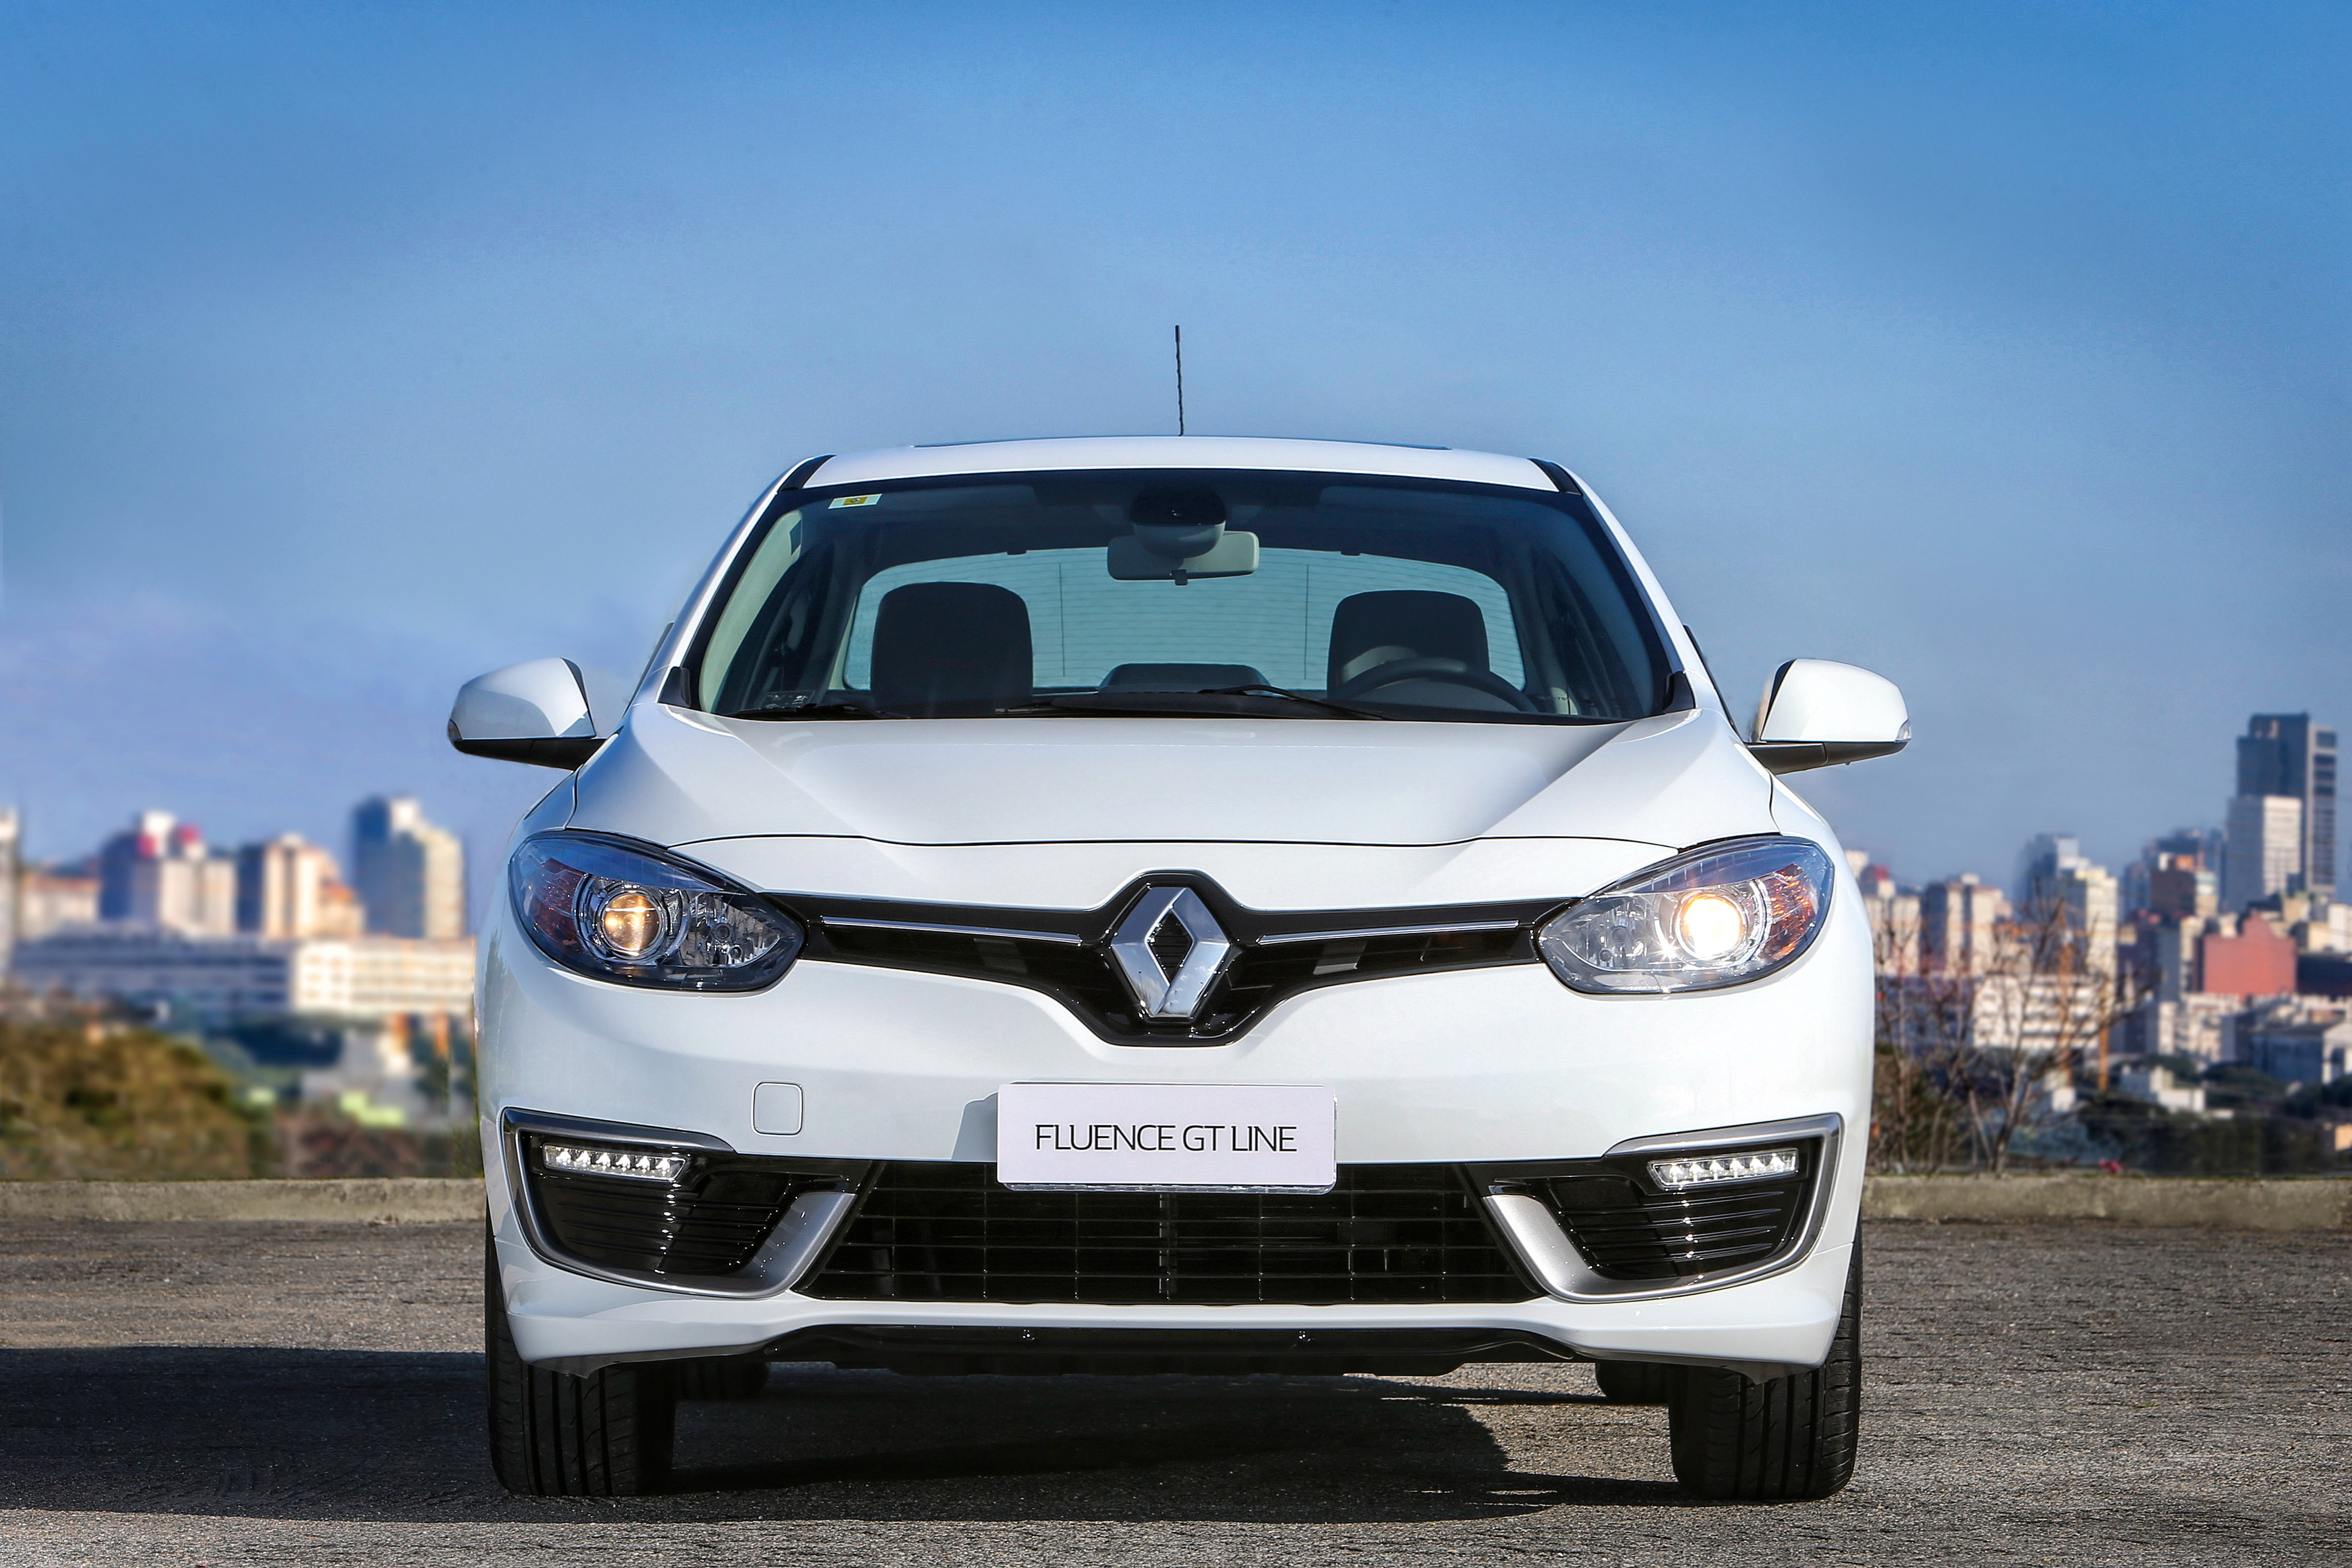 2016 Renault Fluence GT Line Launched in Brazil with 2 ...